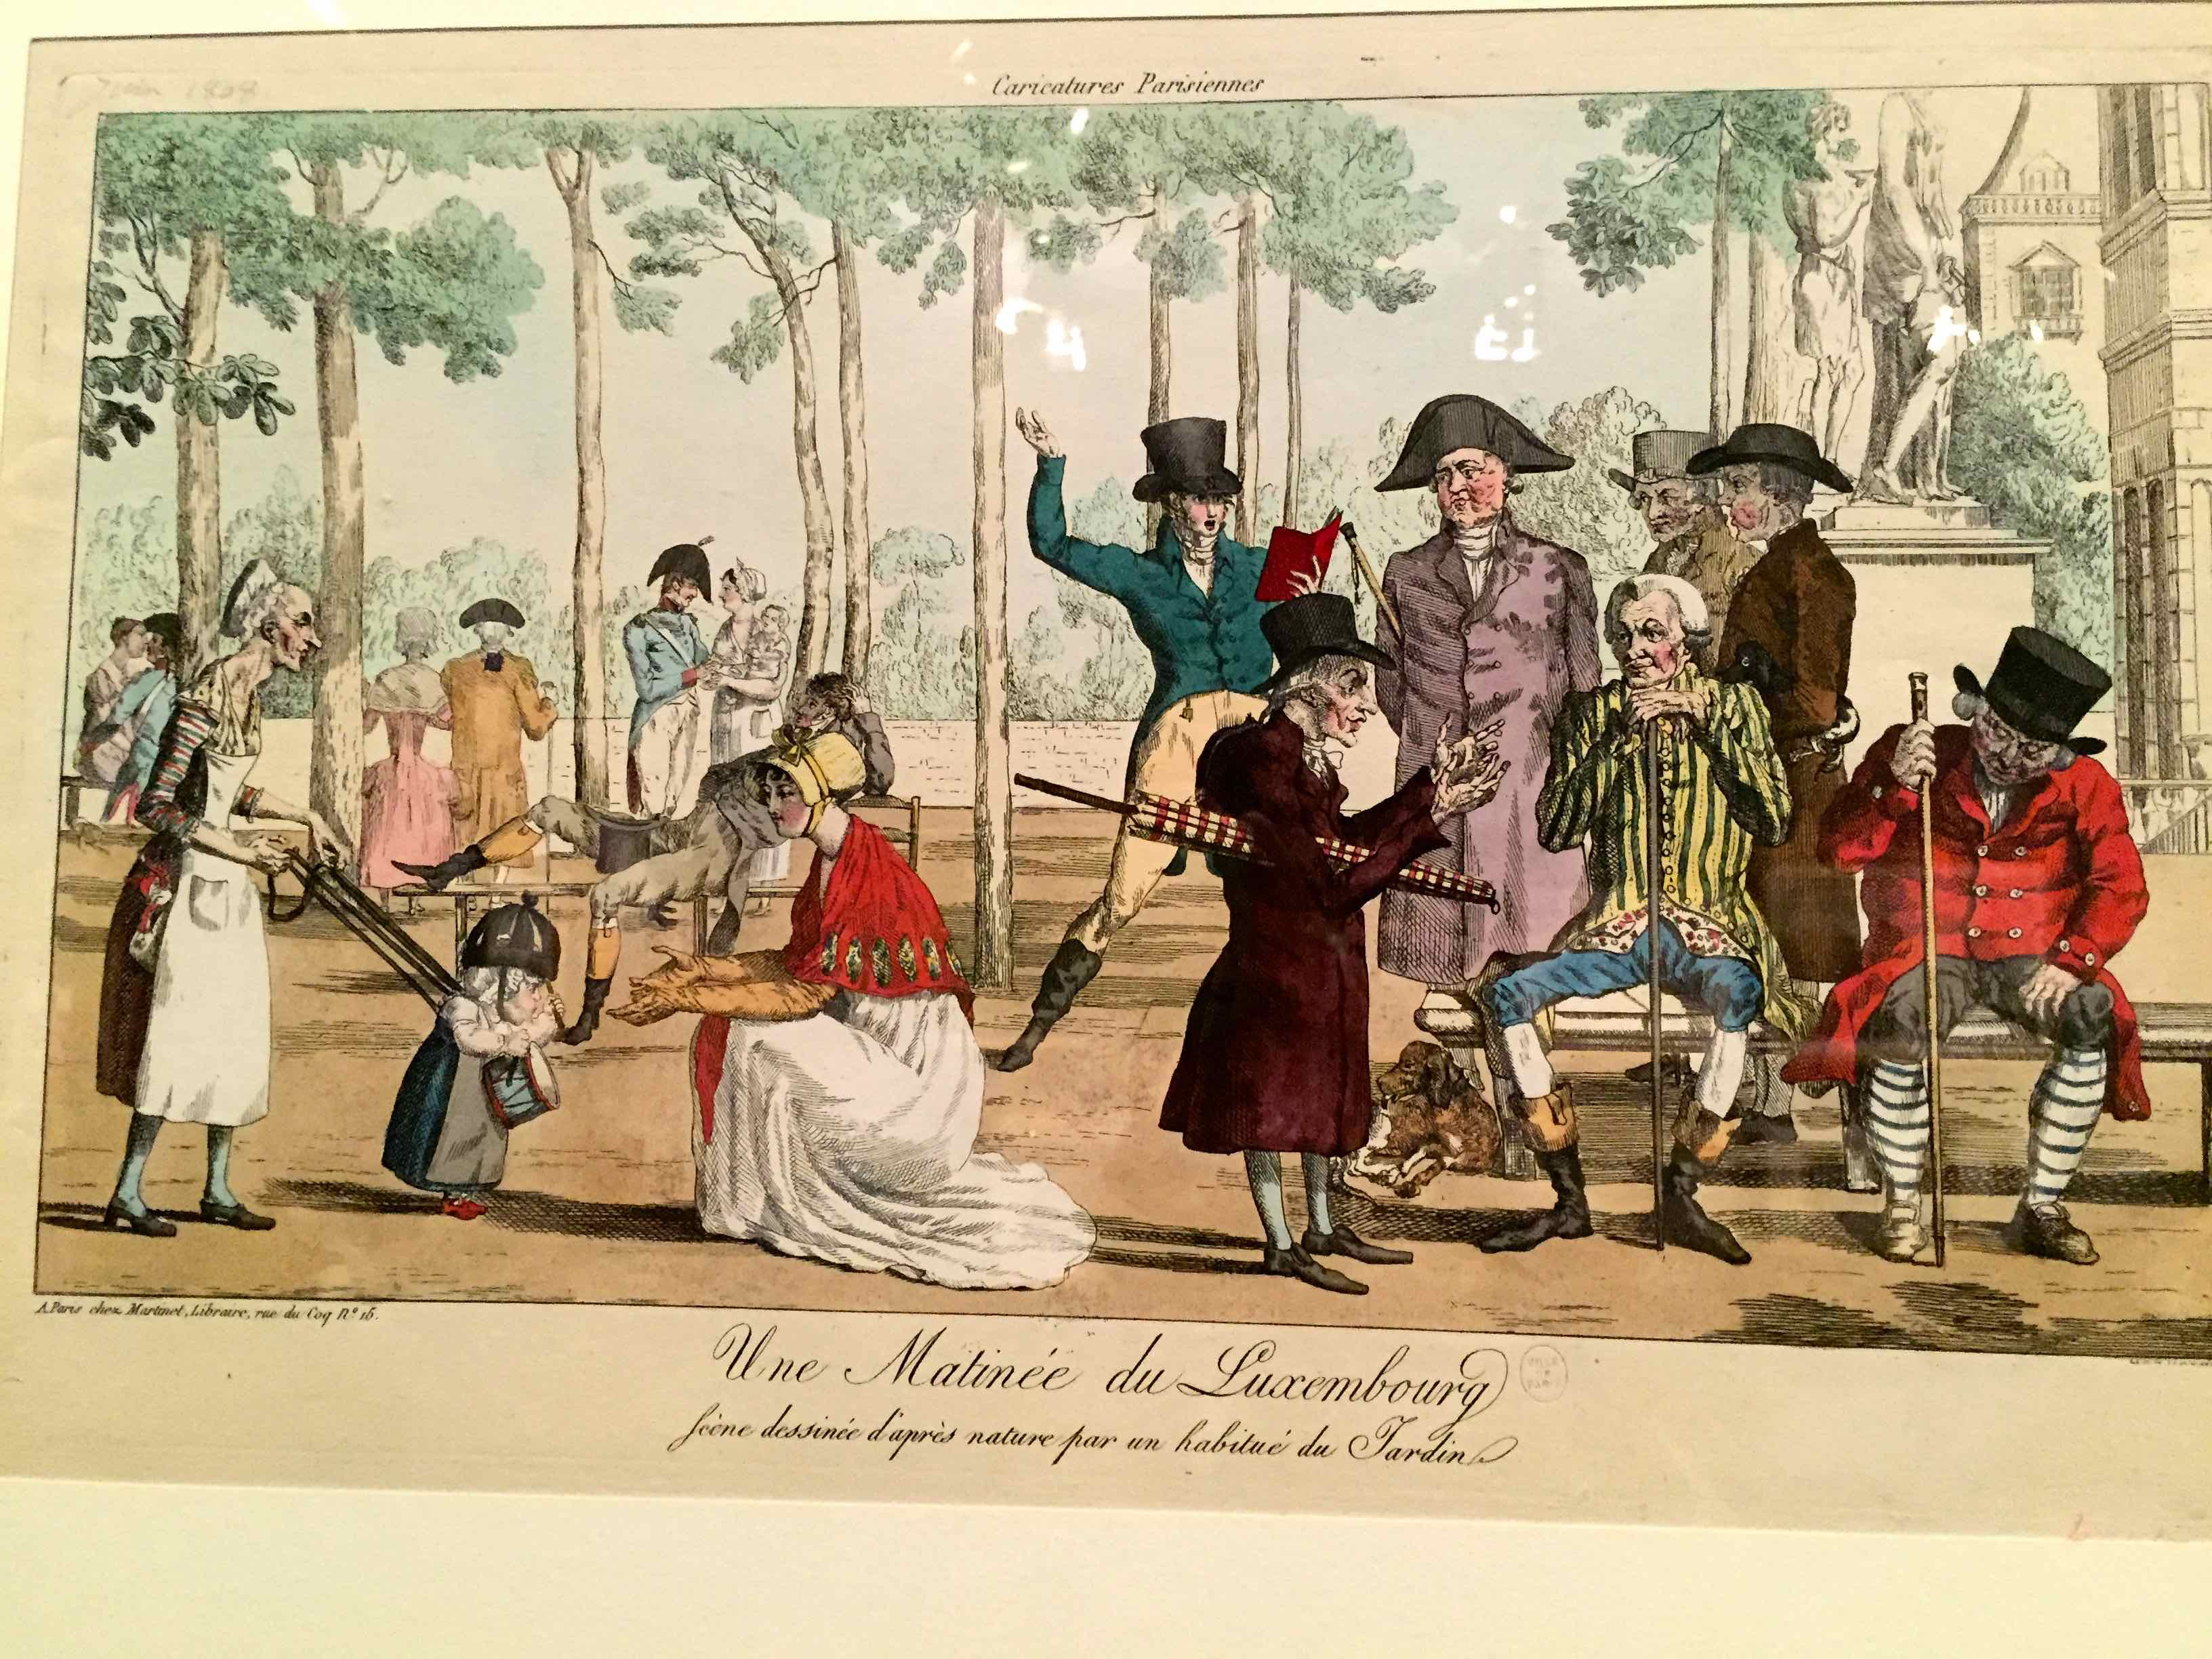 Morning Luxembourg Carnavalet2781